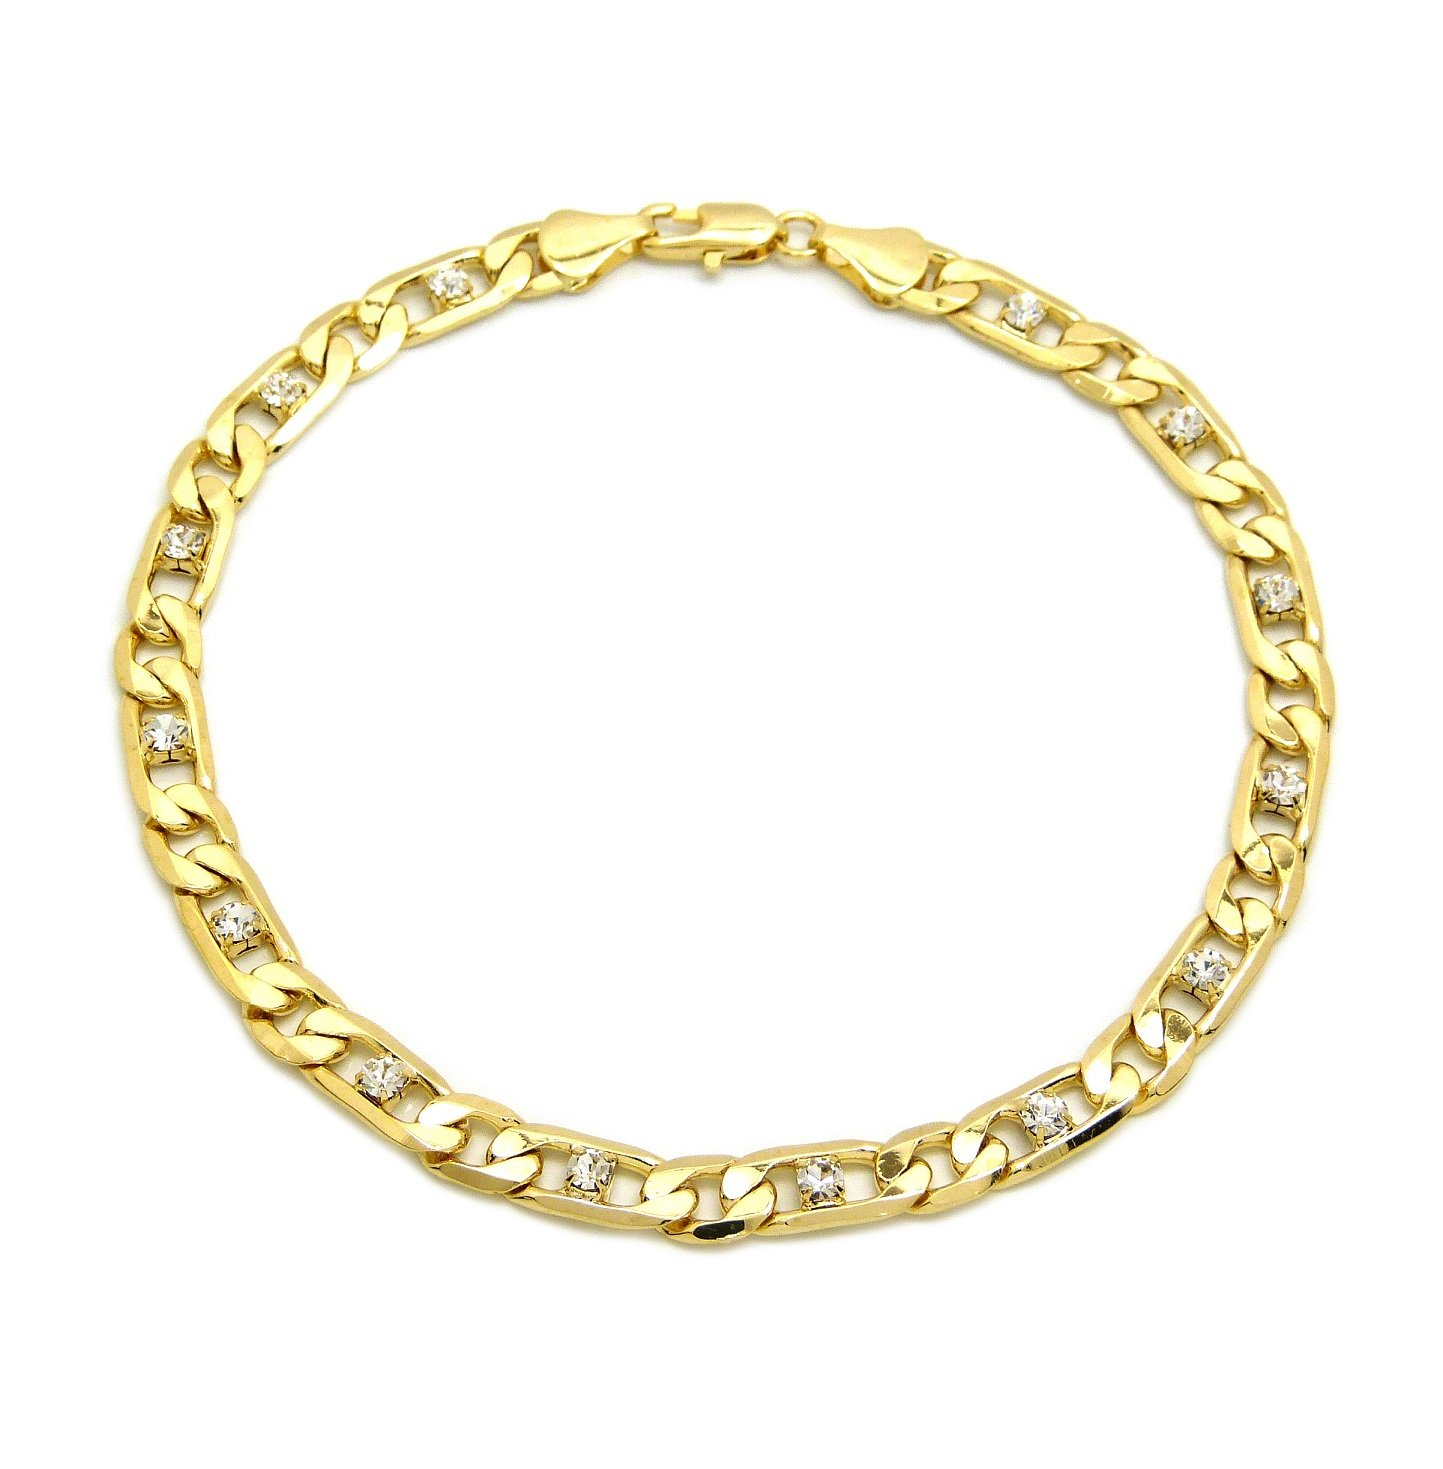 Fashion 21 Electro Gold Plated 10'' Diversified Chain Anklet Foot Chain Bracelet in Gold Color (Made in Korea) (6mm 10'' Iced Out Figaro Anklet)